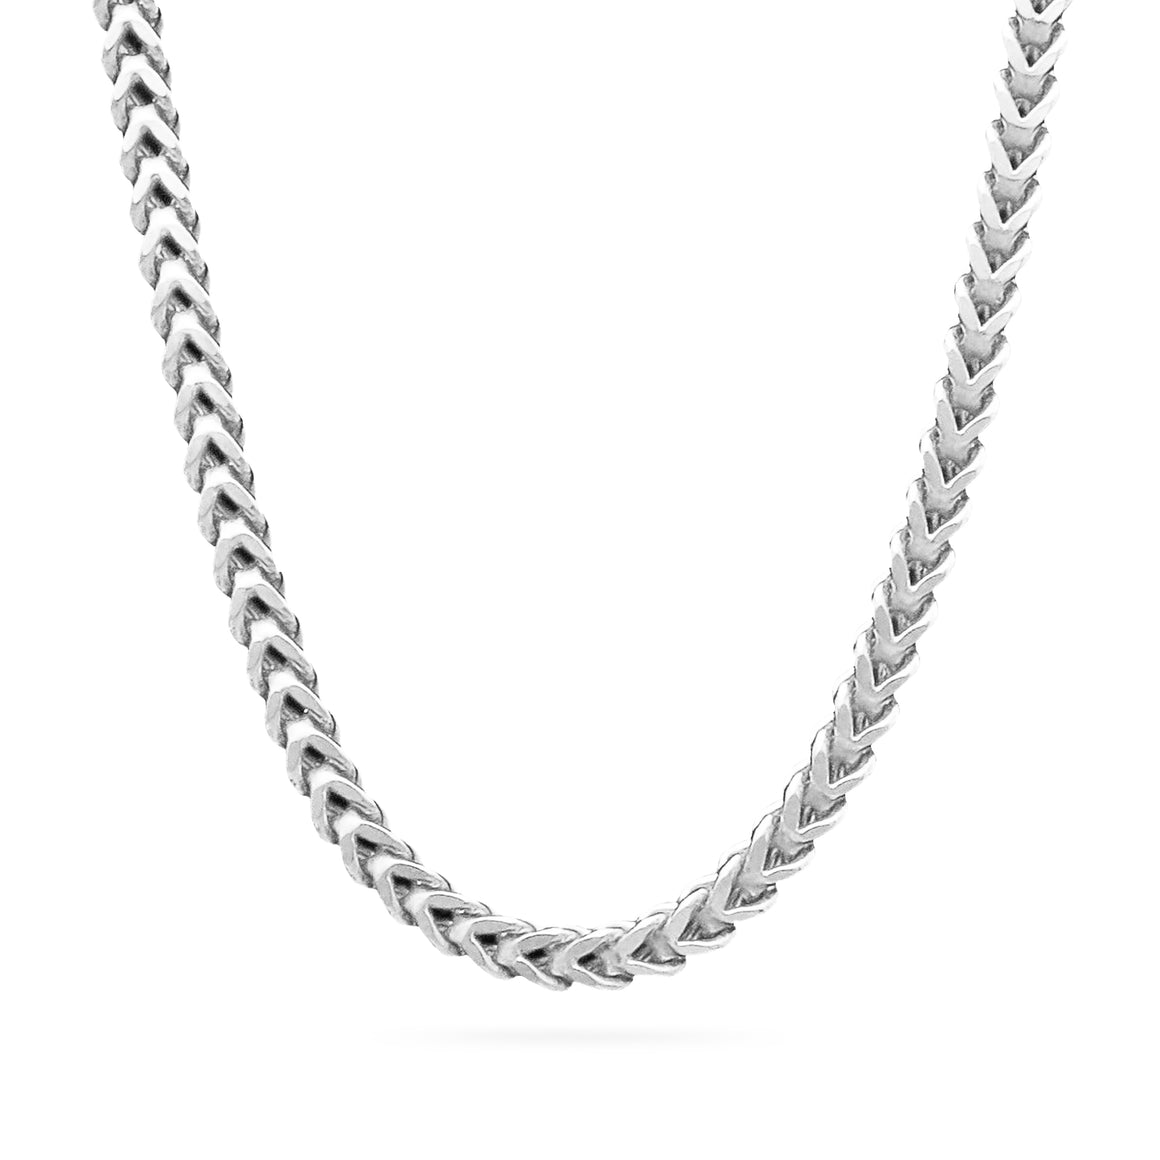 4mm Franco Chain, Silver